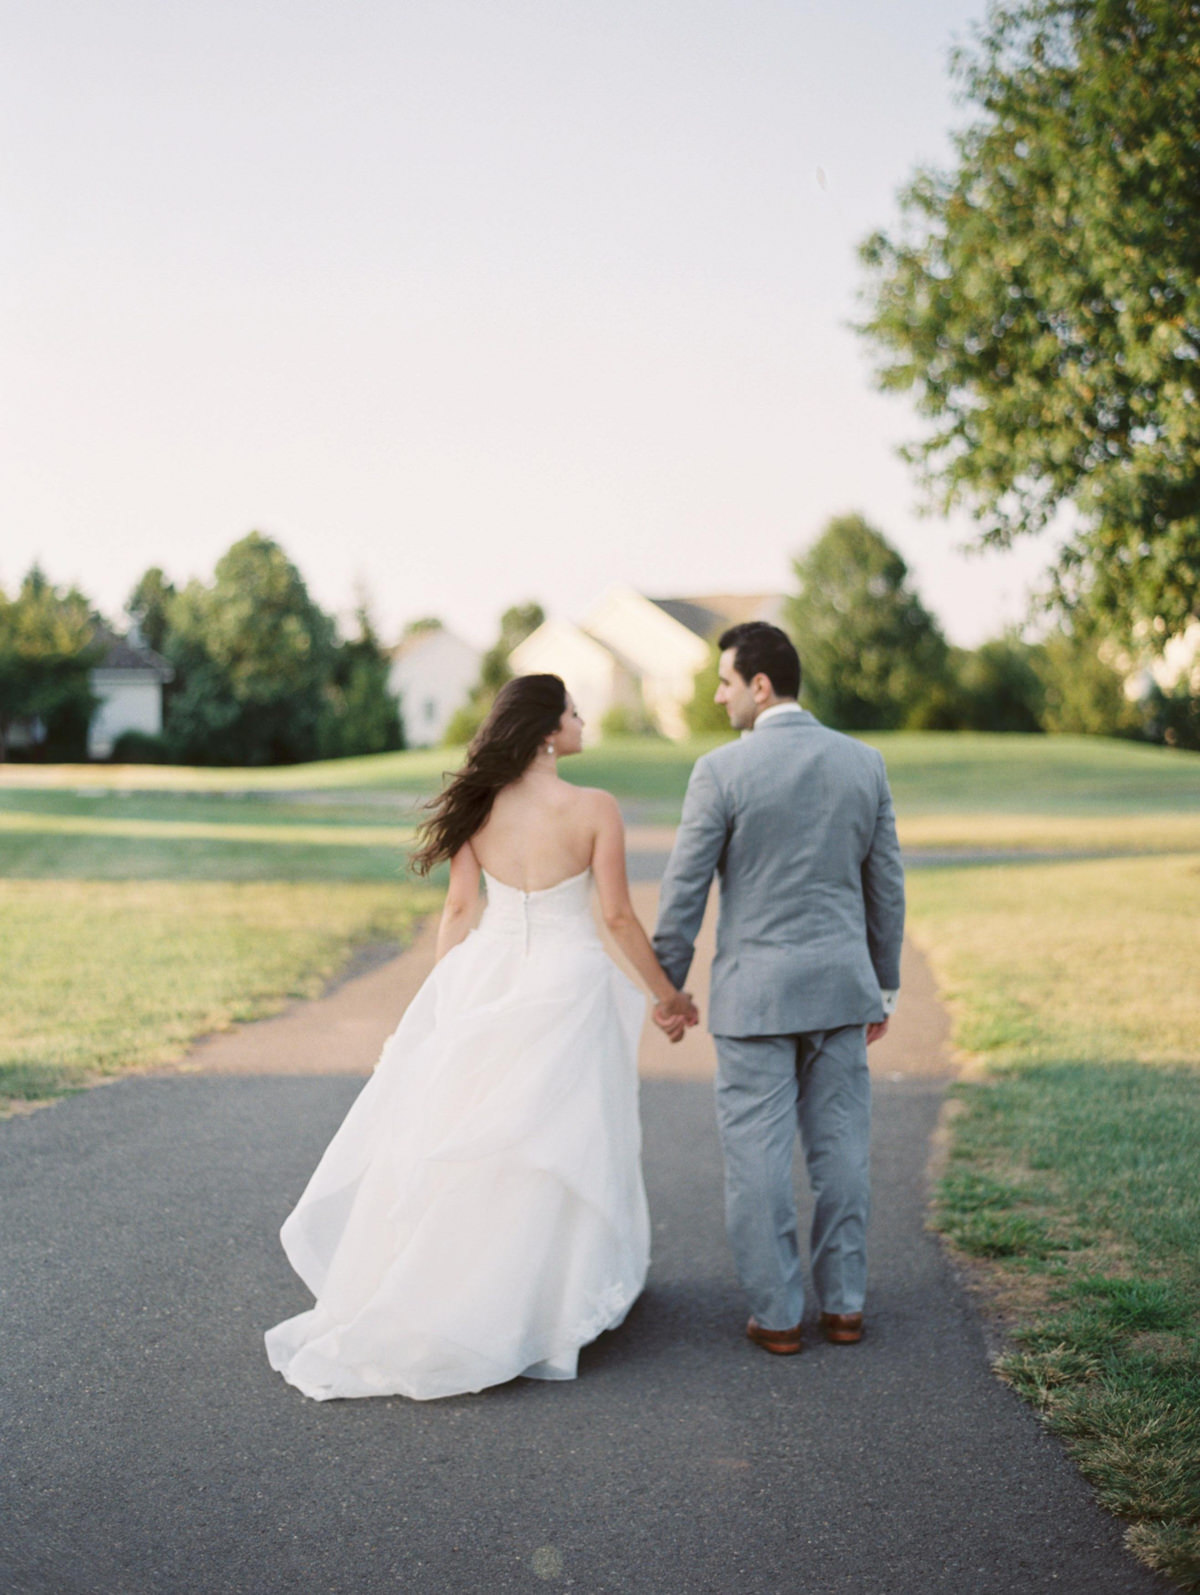 Virginia Country Club Wedding photo by Matoli Keely Photography